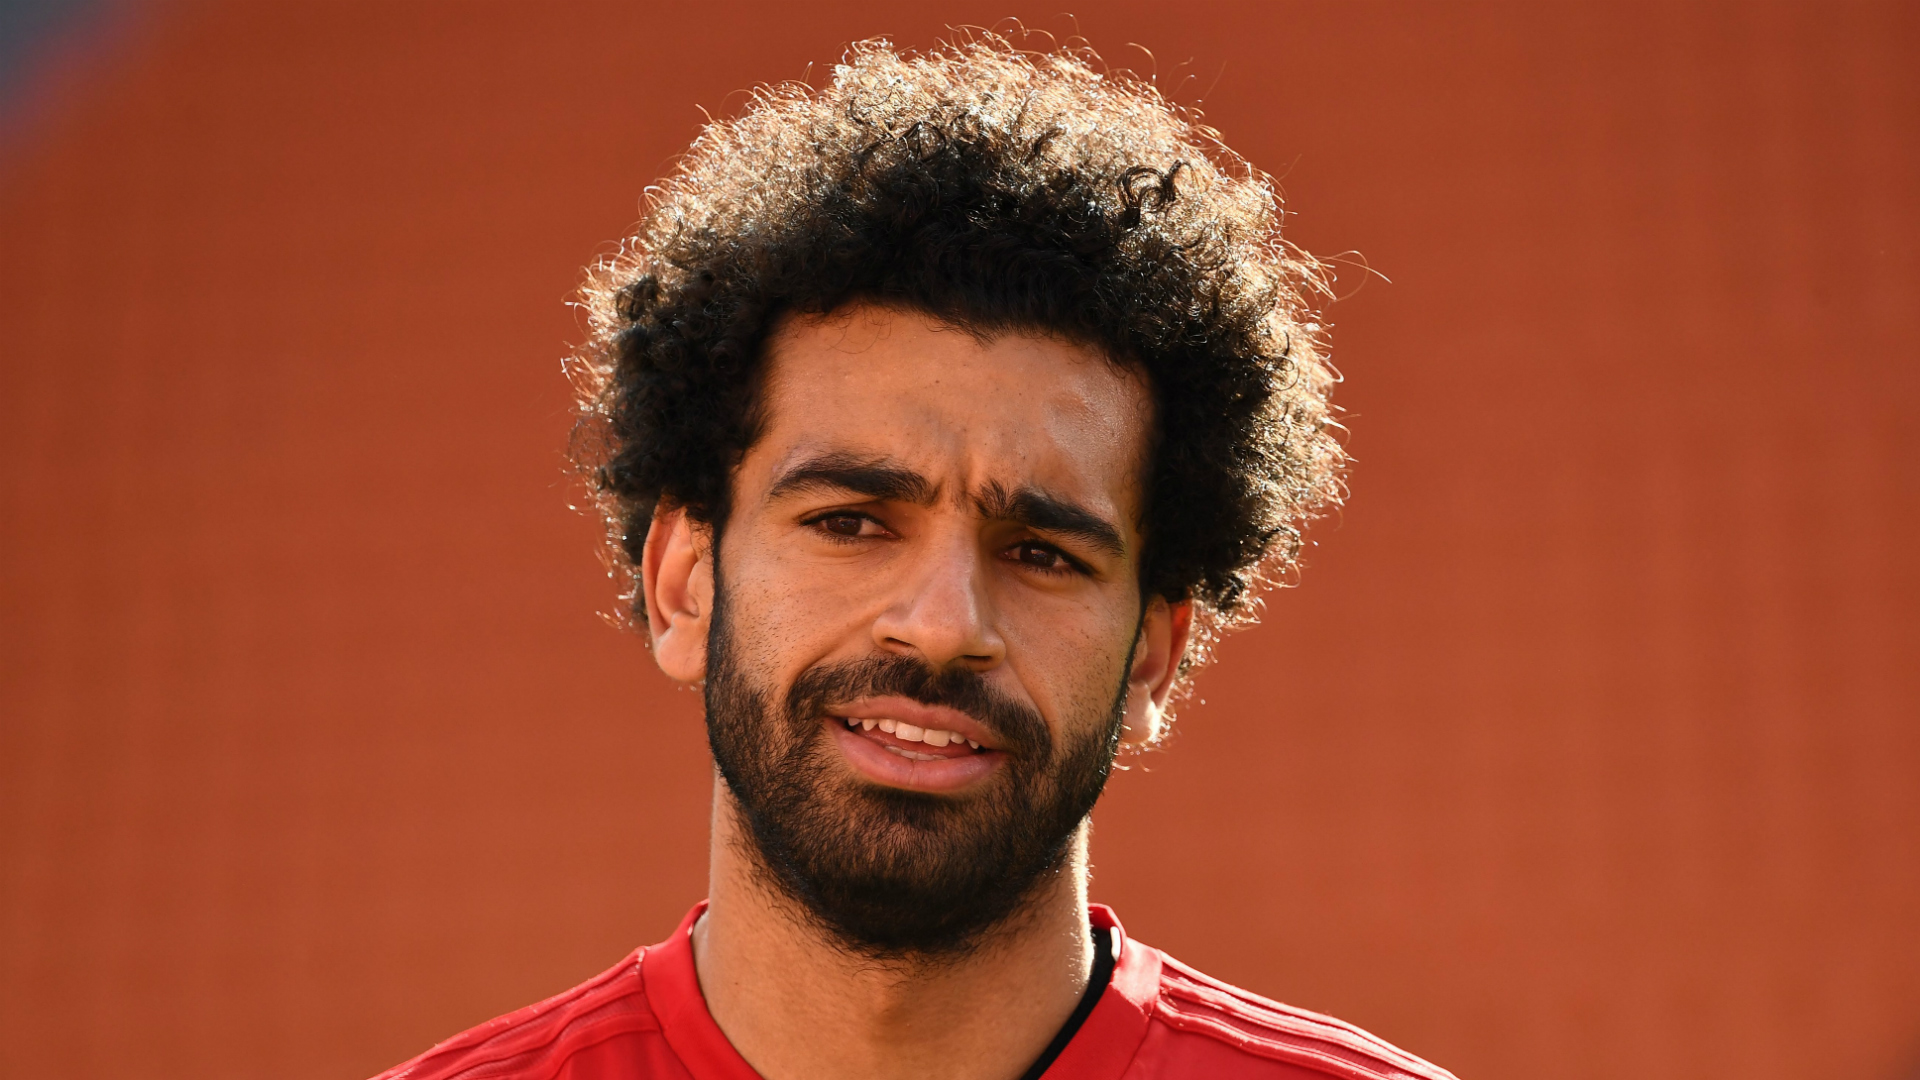 Kenya: Salah disappoints as Egypt crushed by Russia | The Standard - Kenya